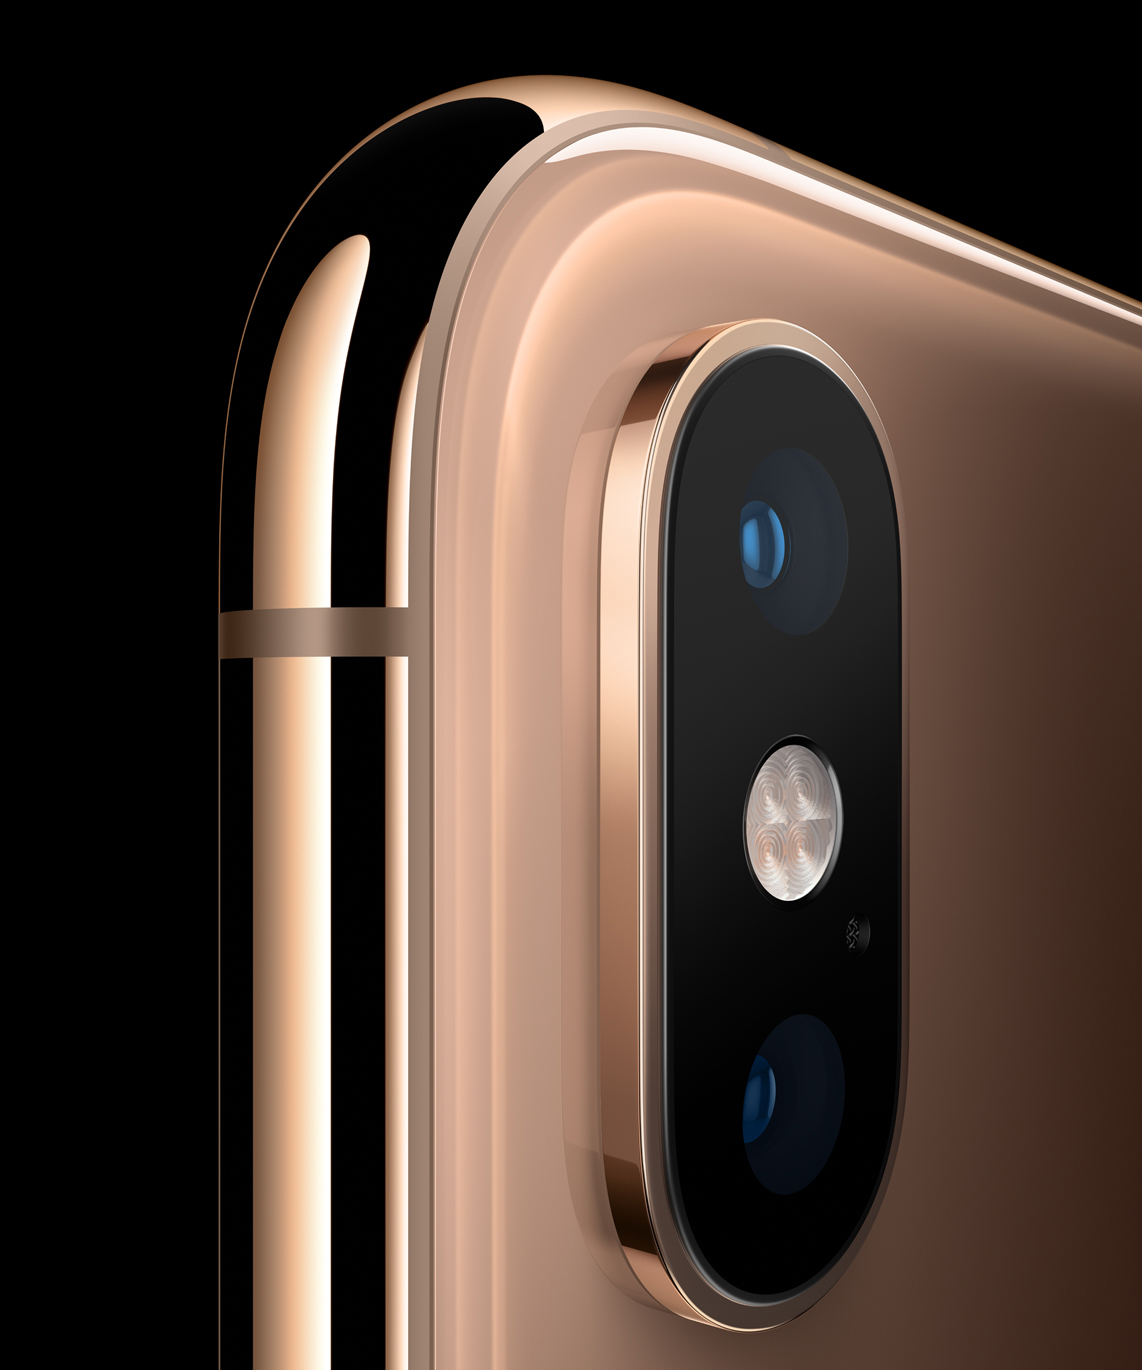 apple iphone xs new dual camera system